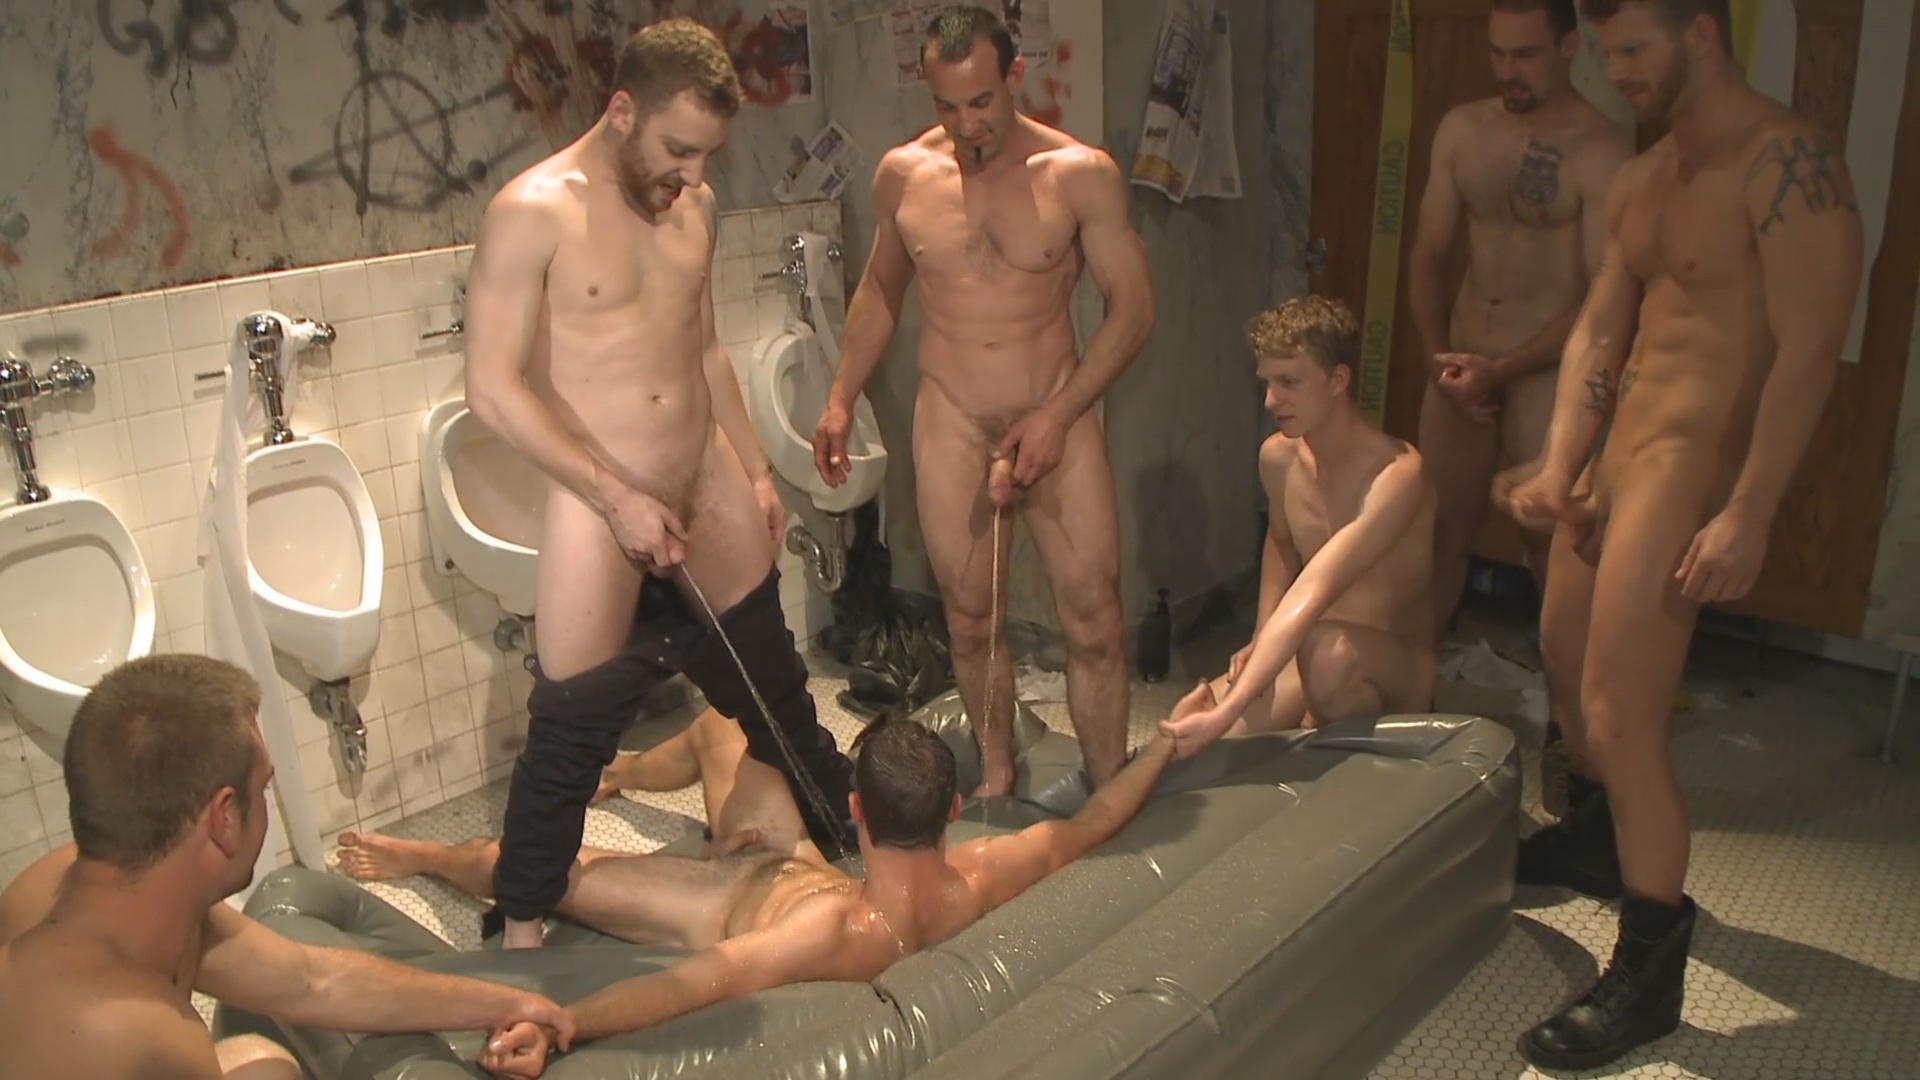 Free glory hole movies video